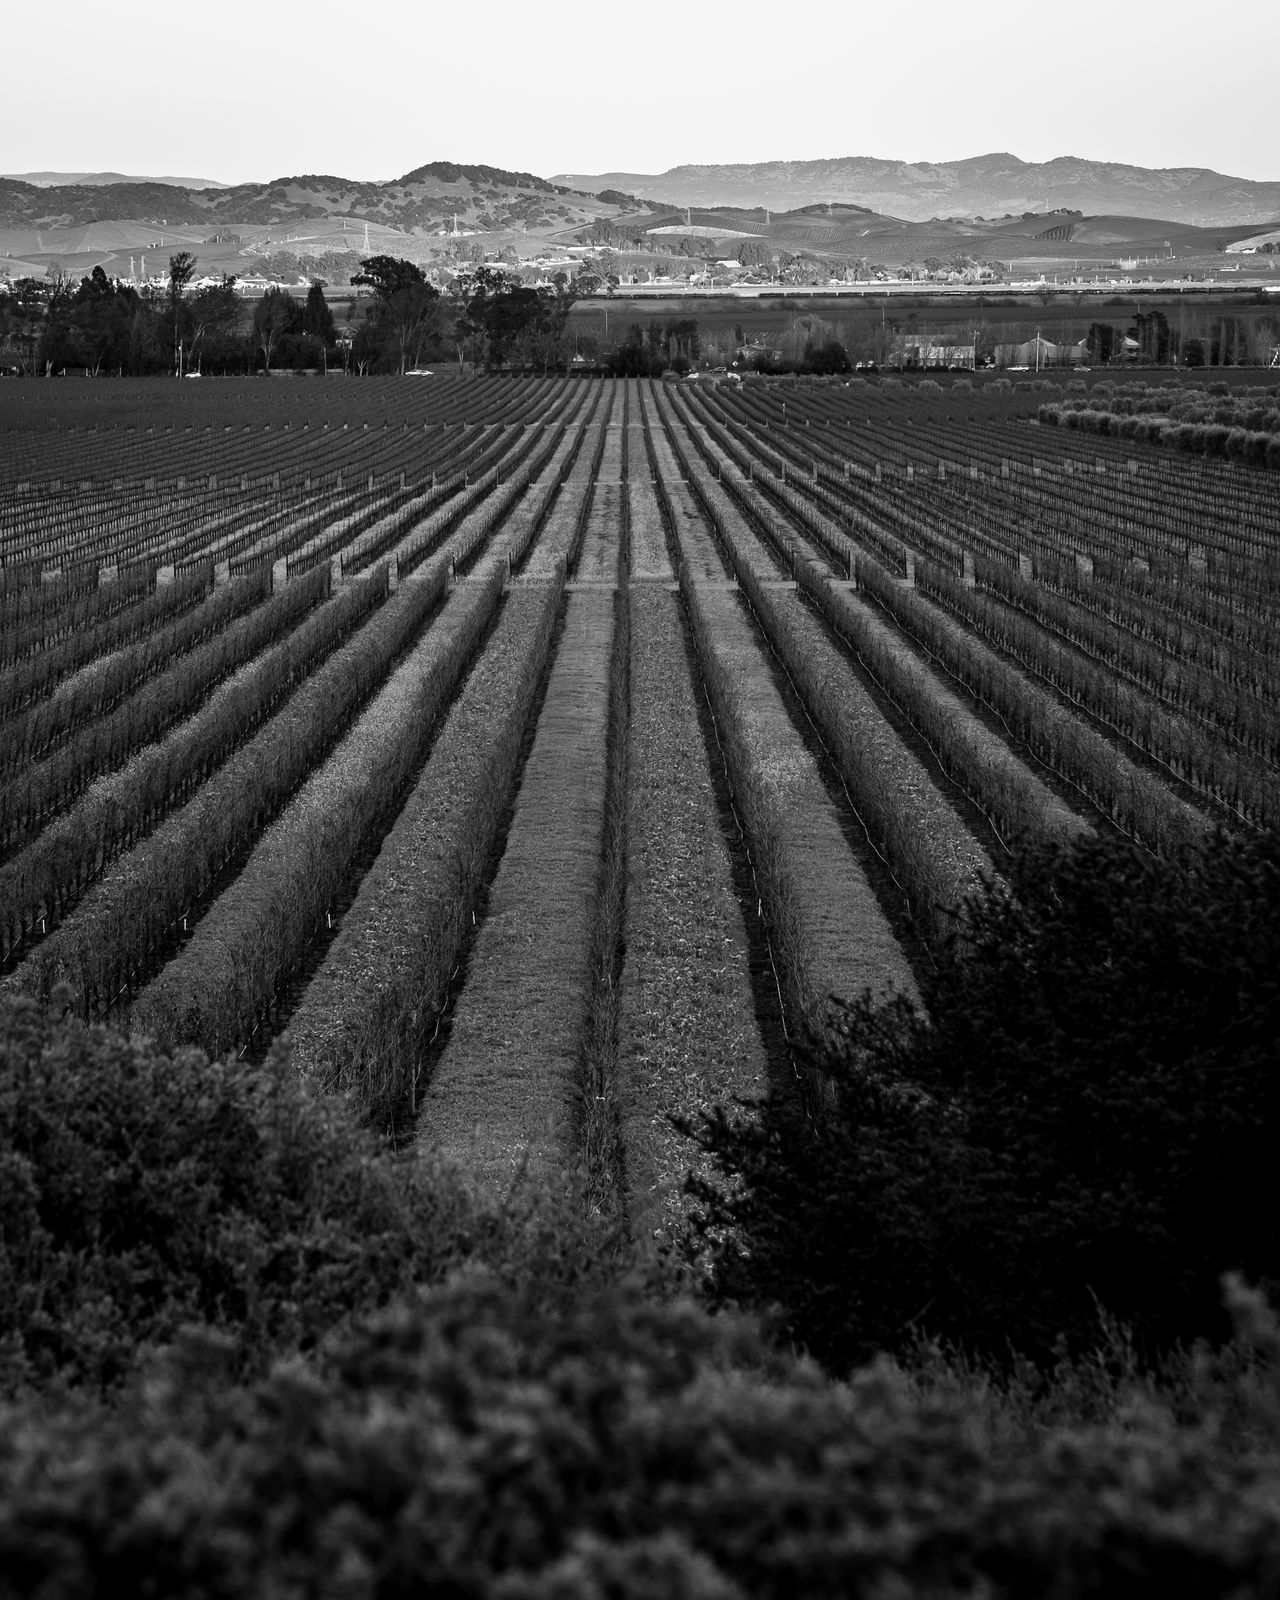 Agriculture Plowed Field Rural Scene Nature Pattern Landscape OutdoorsVineyard Travel EyeEm Nature Lover The Week On EyeEem Winemaking Life Lifestyle tranquil scene Blackandwhite Market Bestsellers 2017